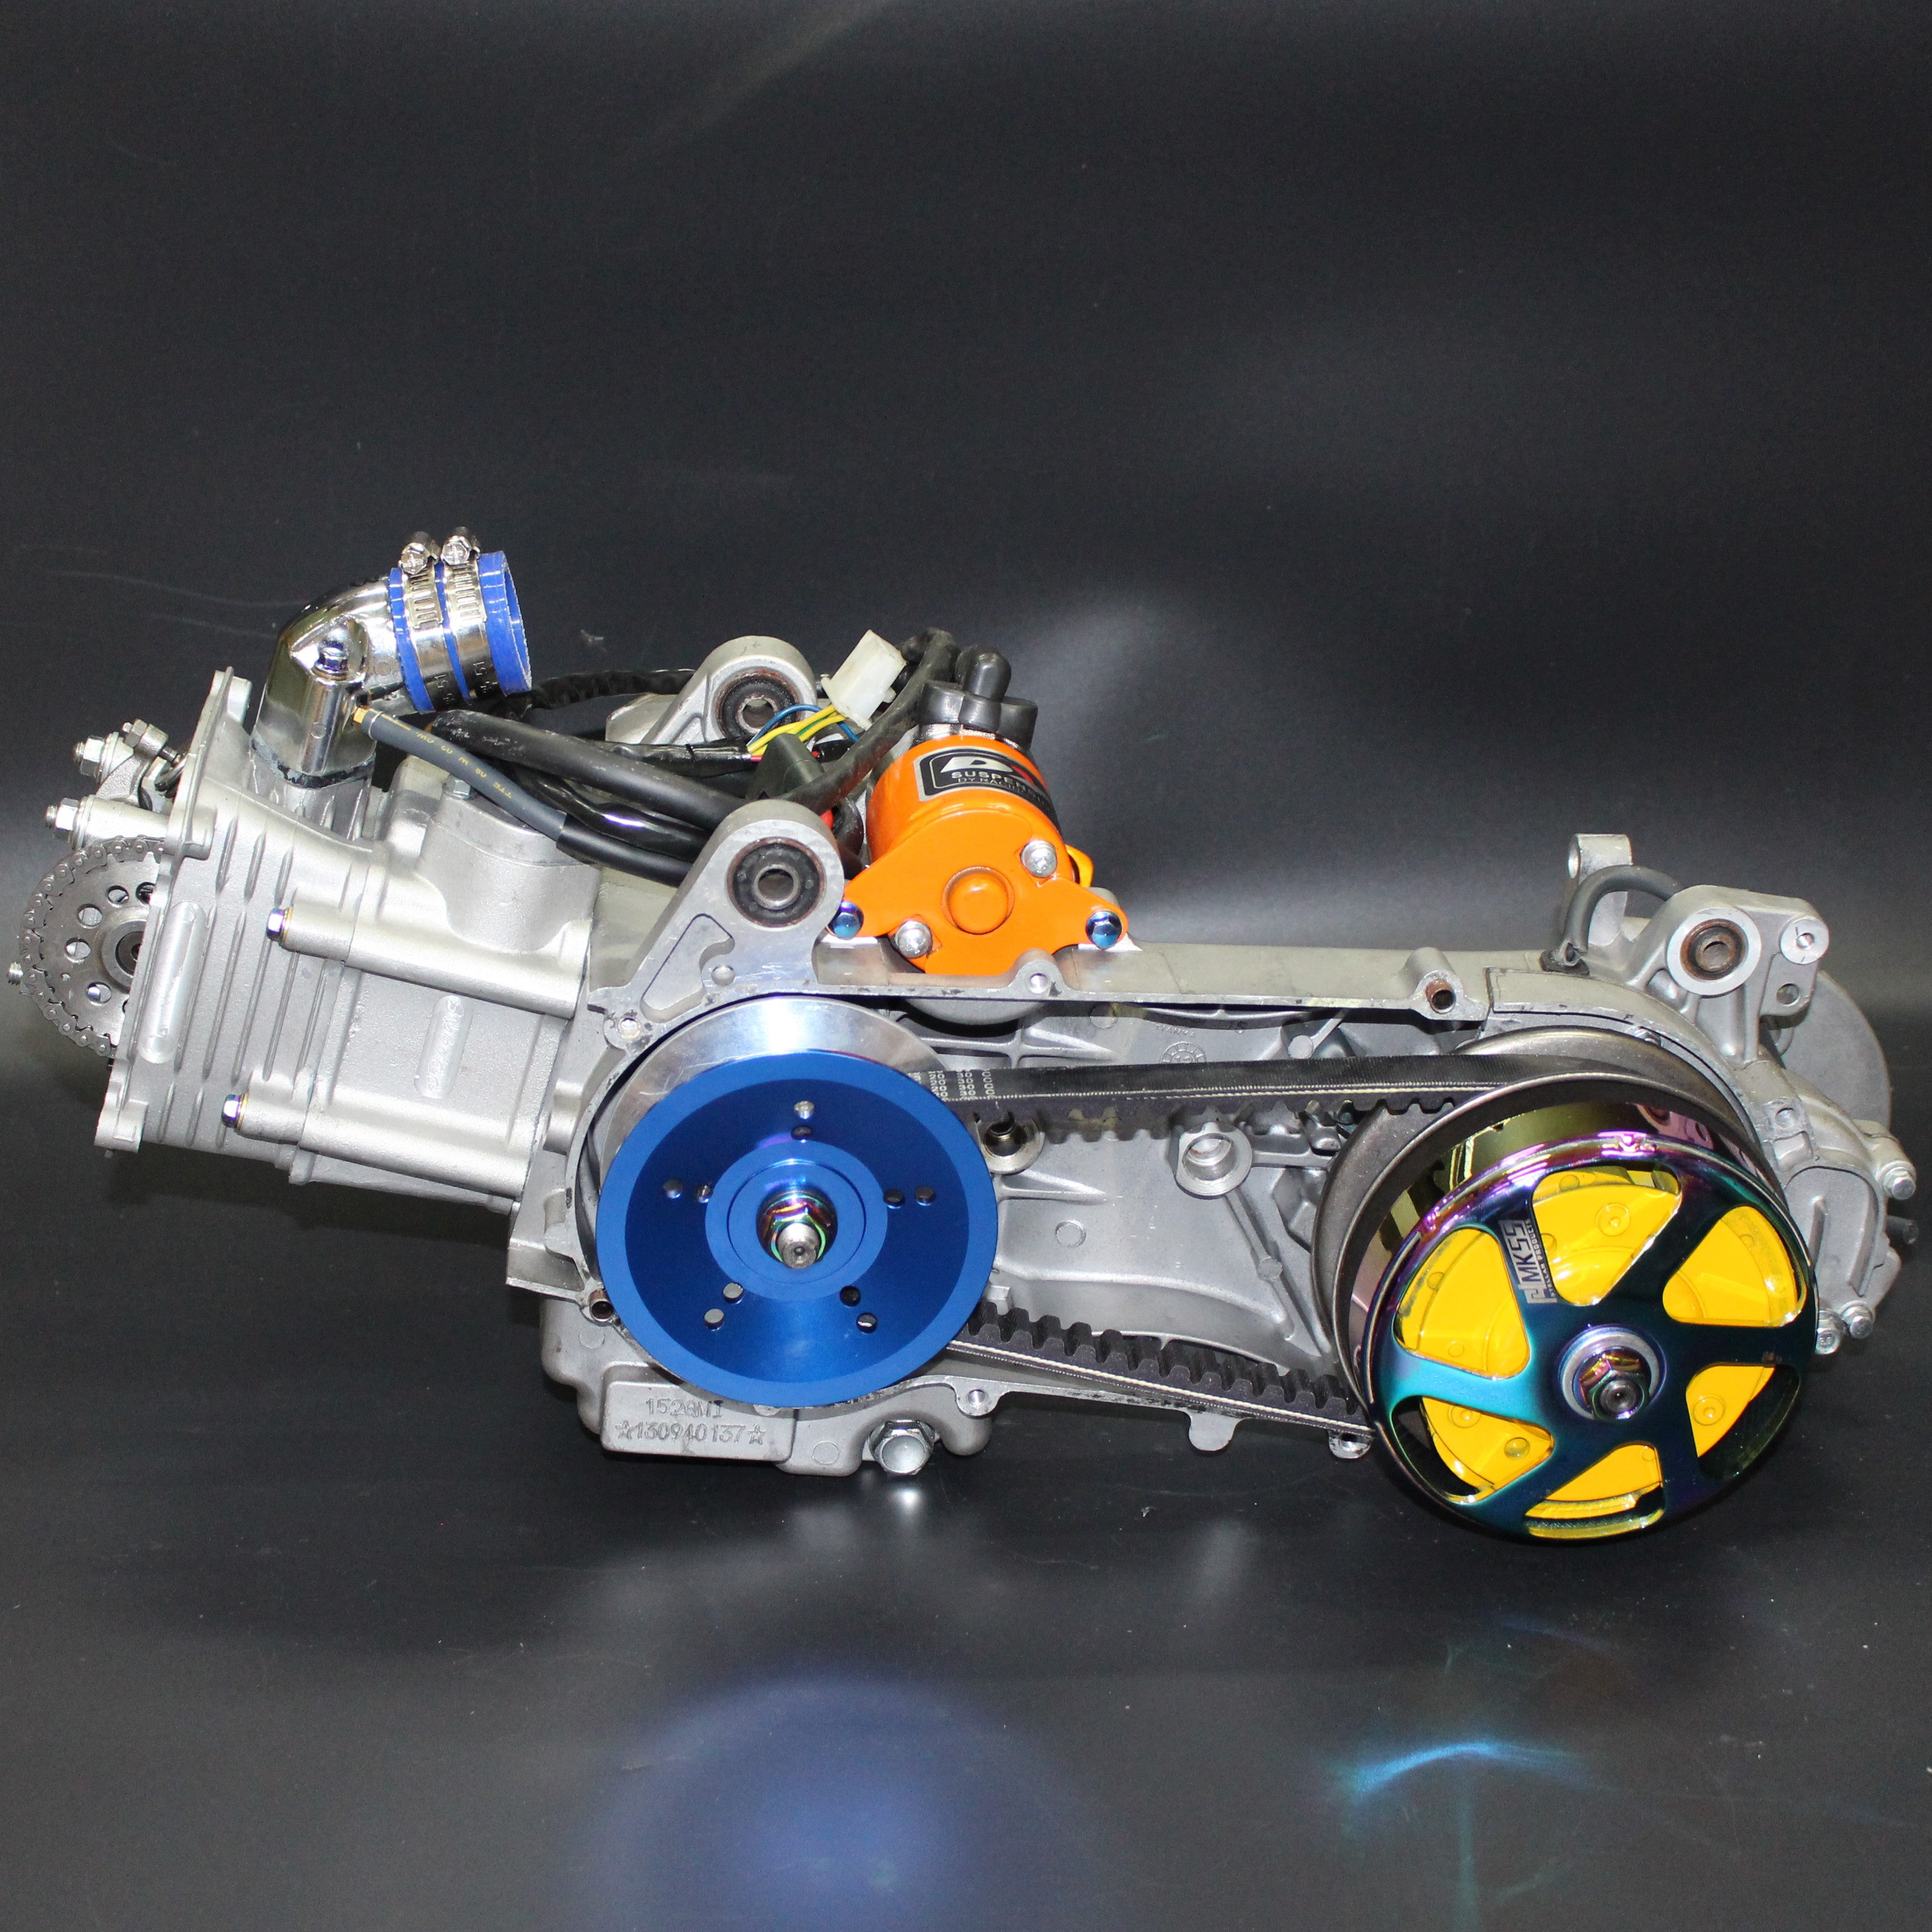 GY6, Motor, 63mm, Cylinder, 2 Valve, Crankshaft ,300, Water Cooling ,camshaft ,a8, 180cc, Tuning, Racing, Engines